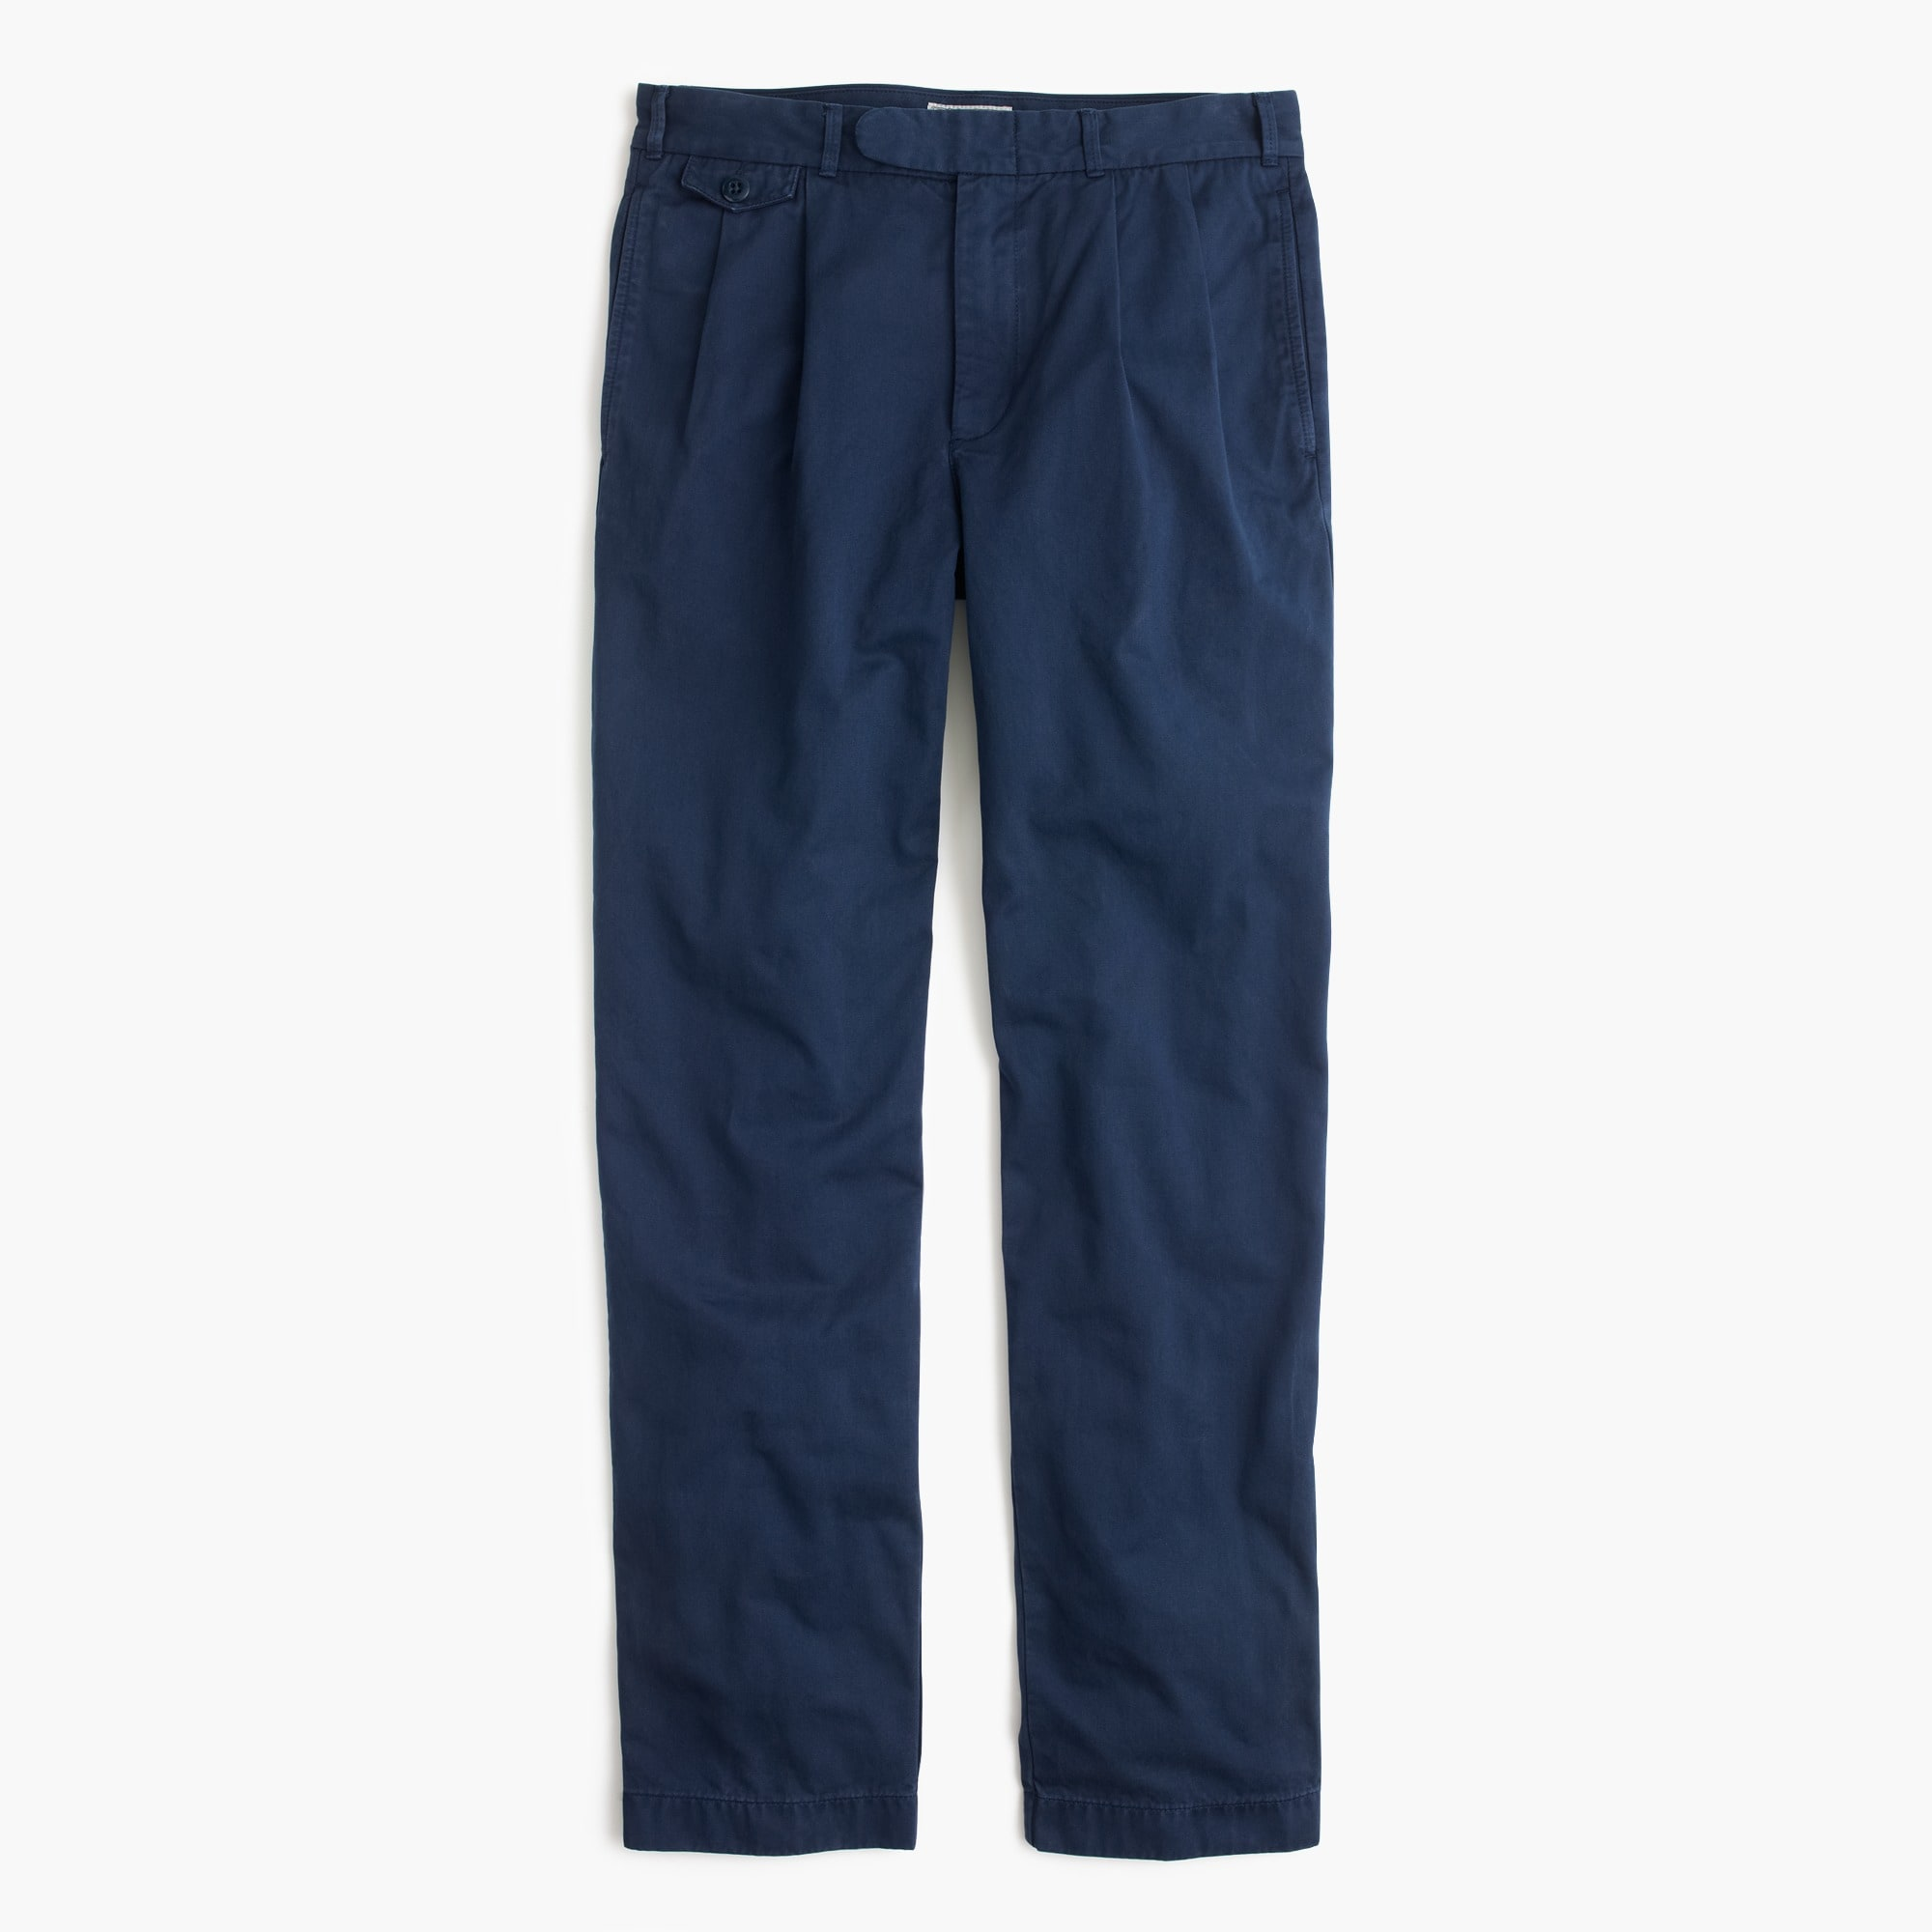 Image 1 for Wallace & Barnes double-pleated relaxed-fit military chino pant